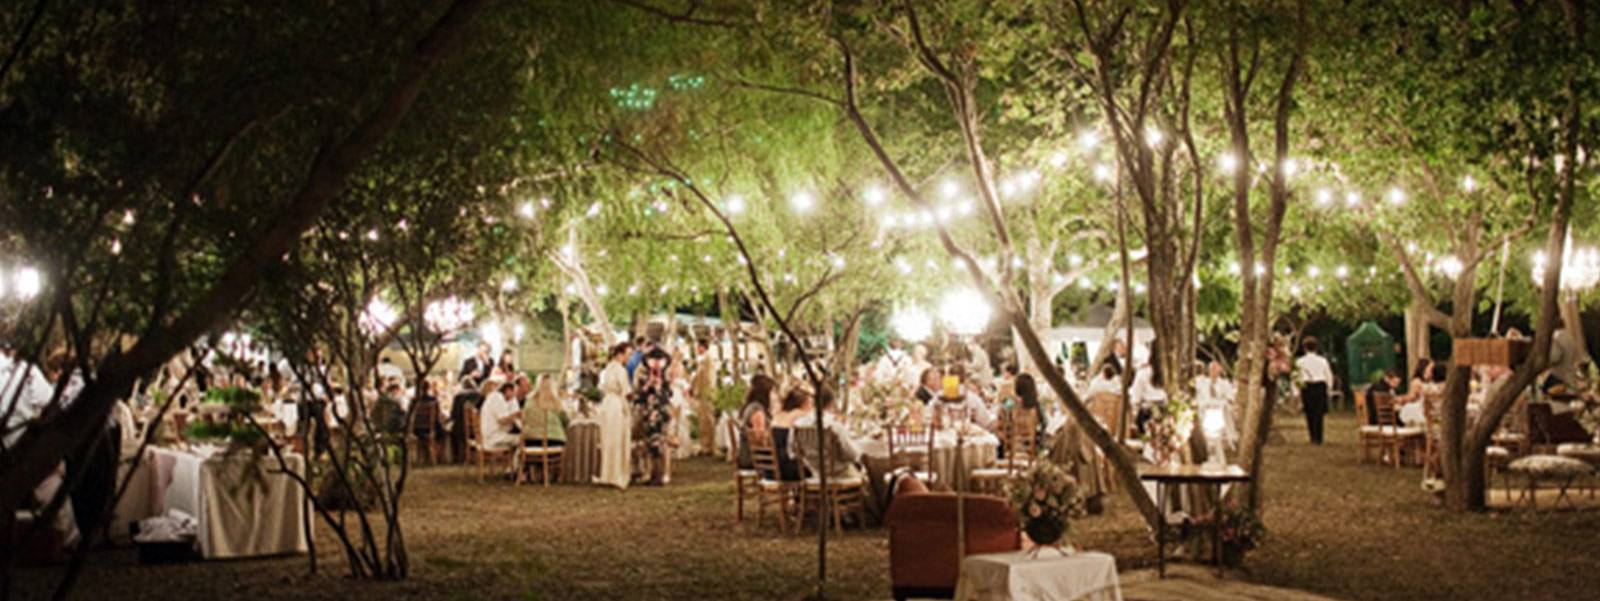 party outdoor lights photo - 10